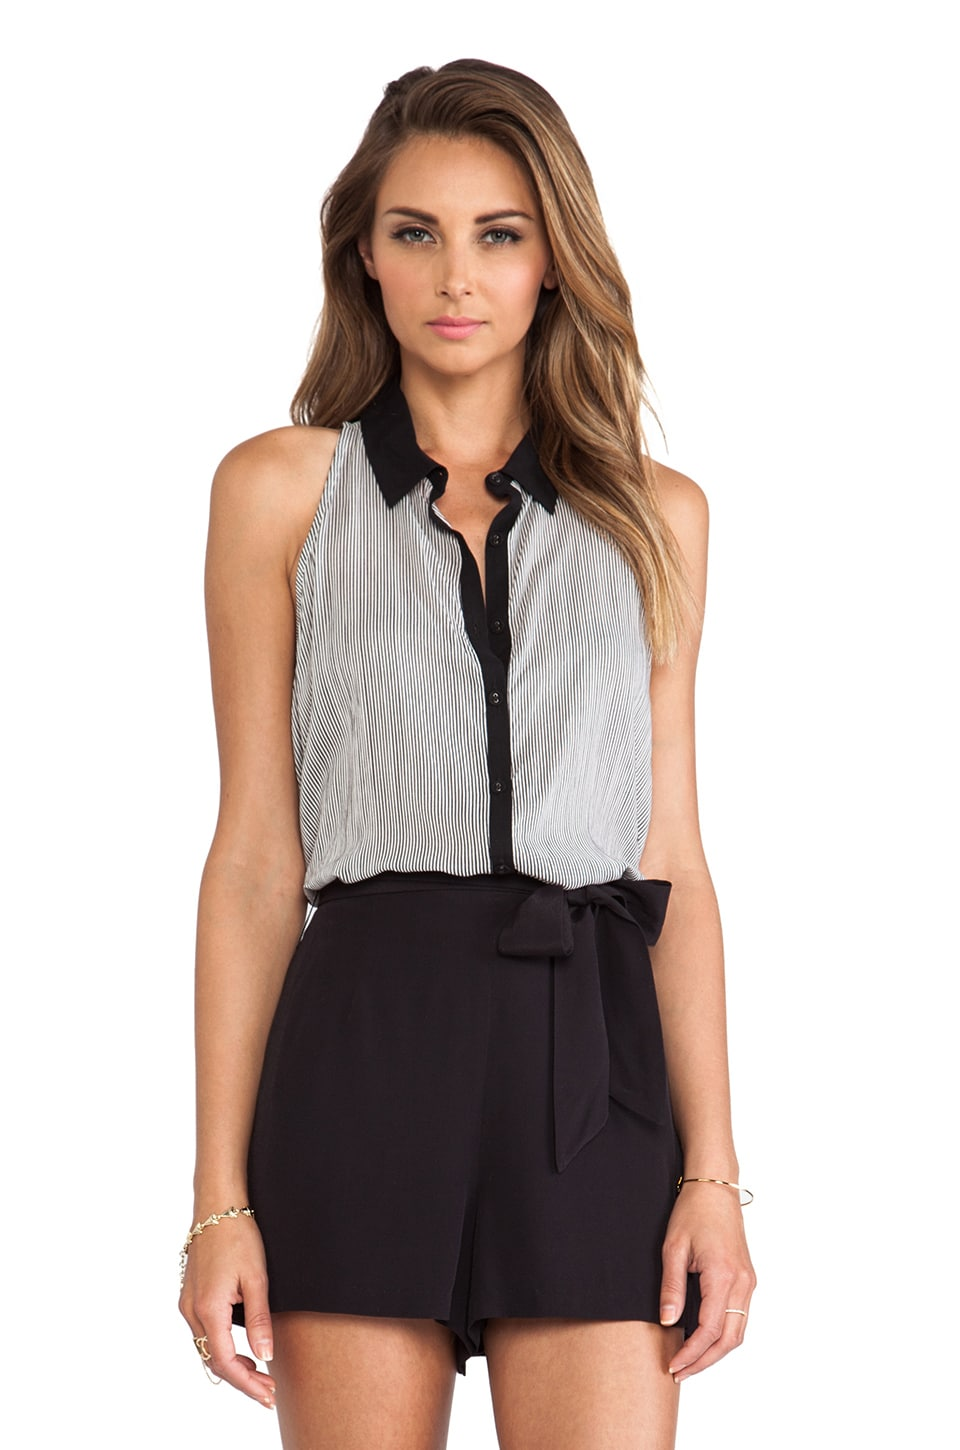 Bella Luxx Sleeveless Collared Shirt in Hamptons Stripe & Black